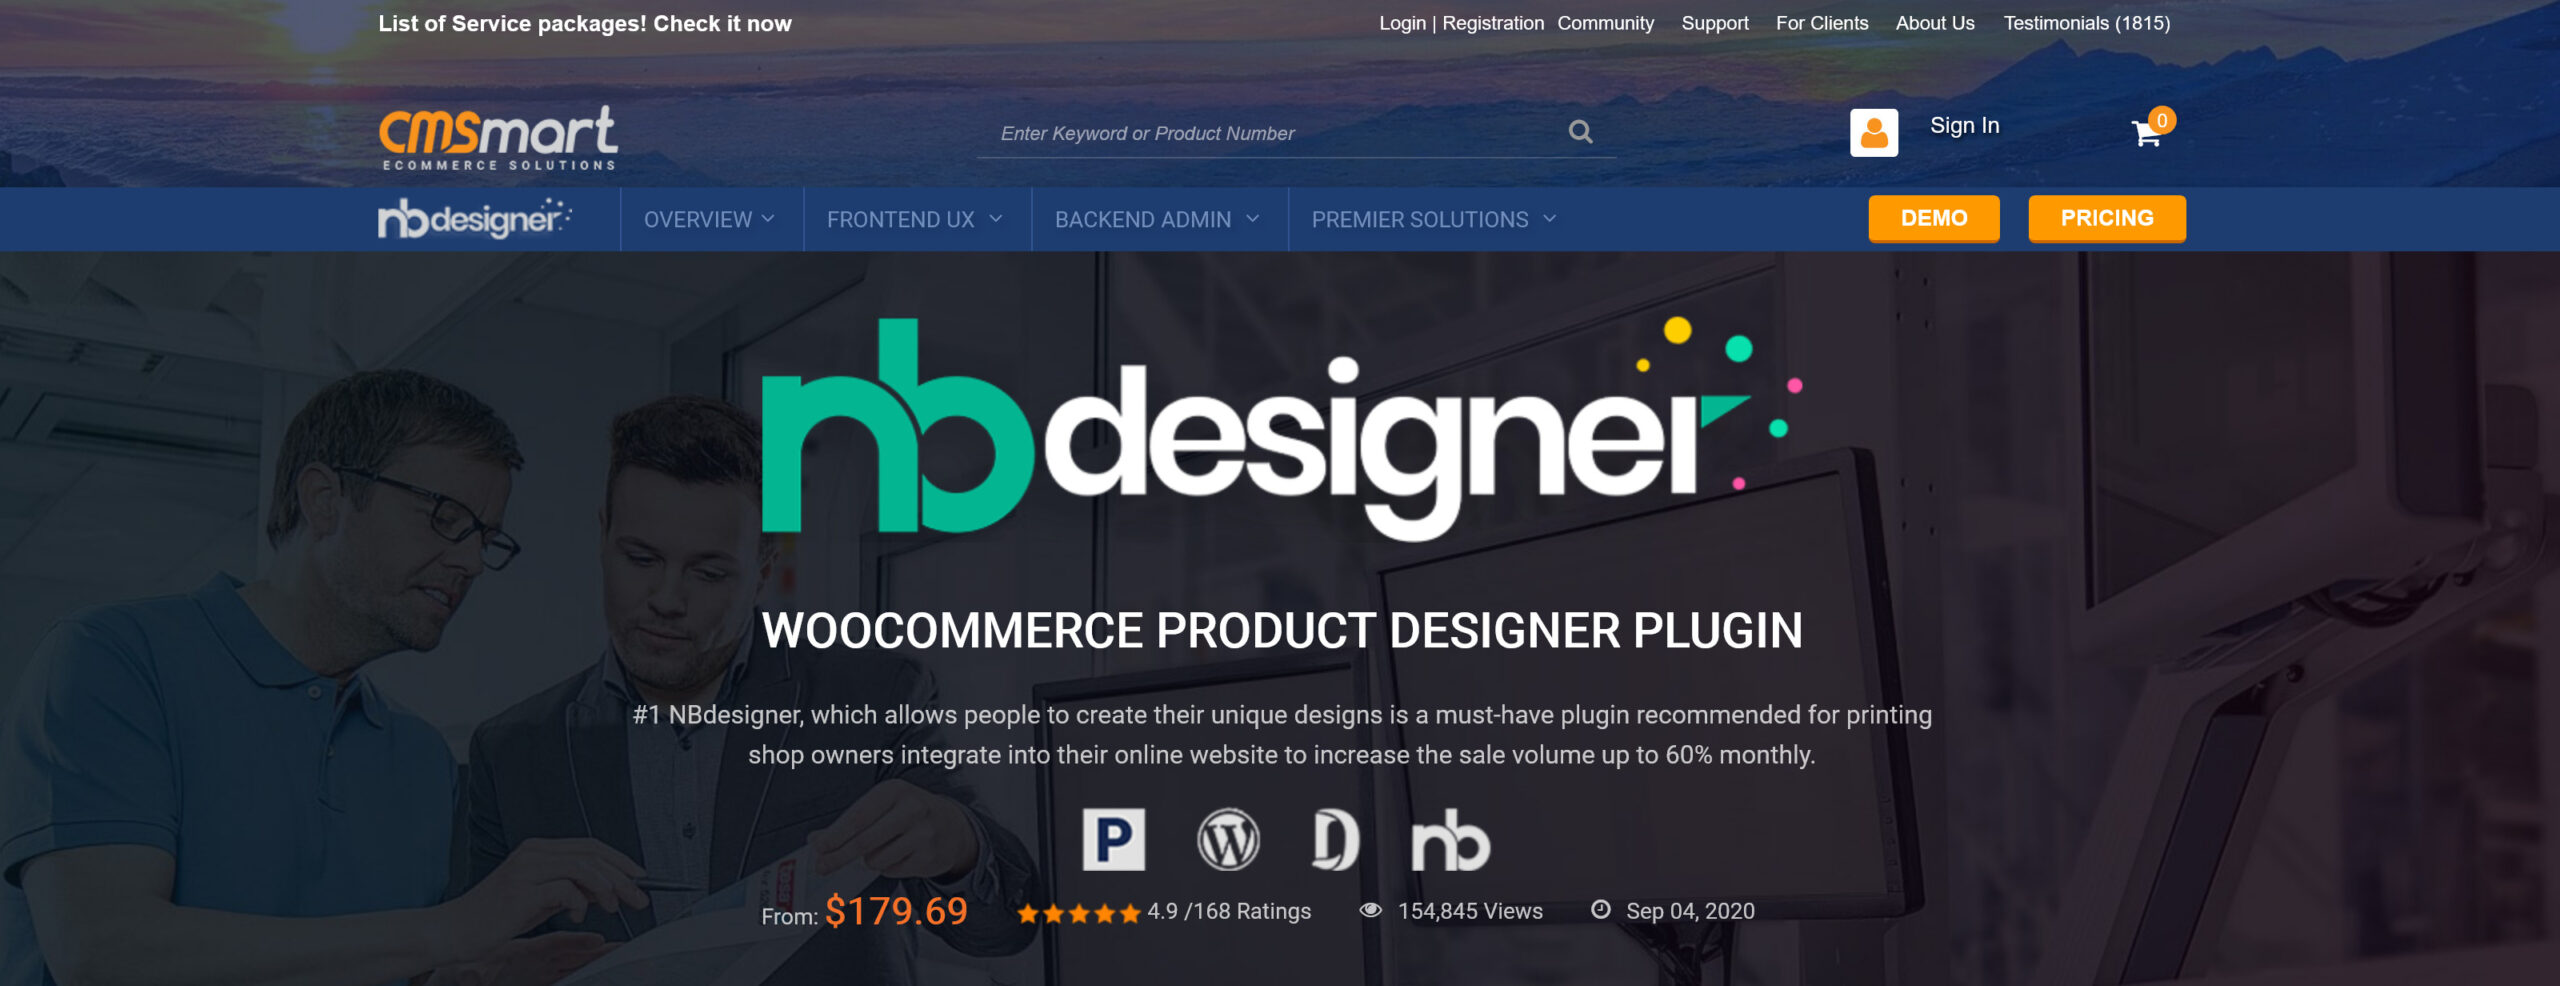 Nbdesigner 2.7.2 – Online Woocommerce Products Designer Plugin